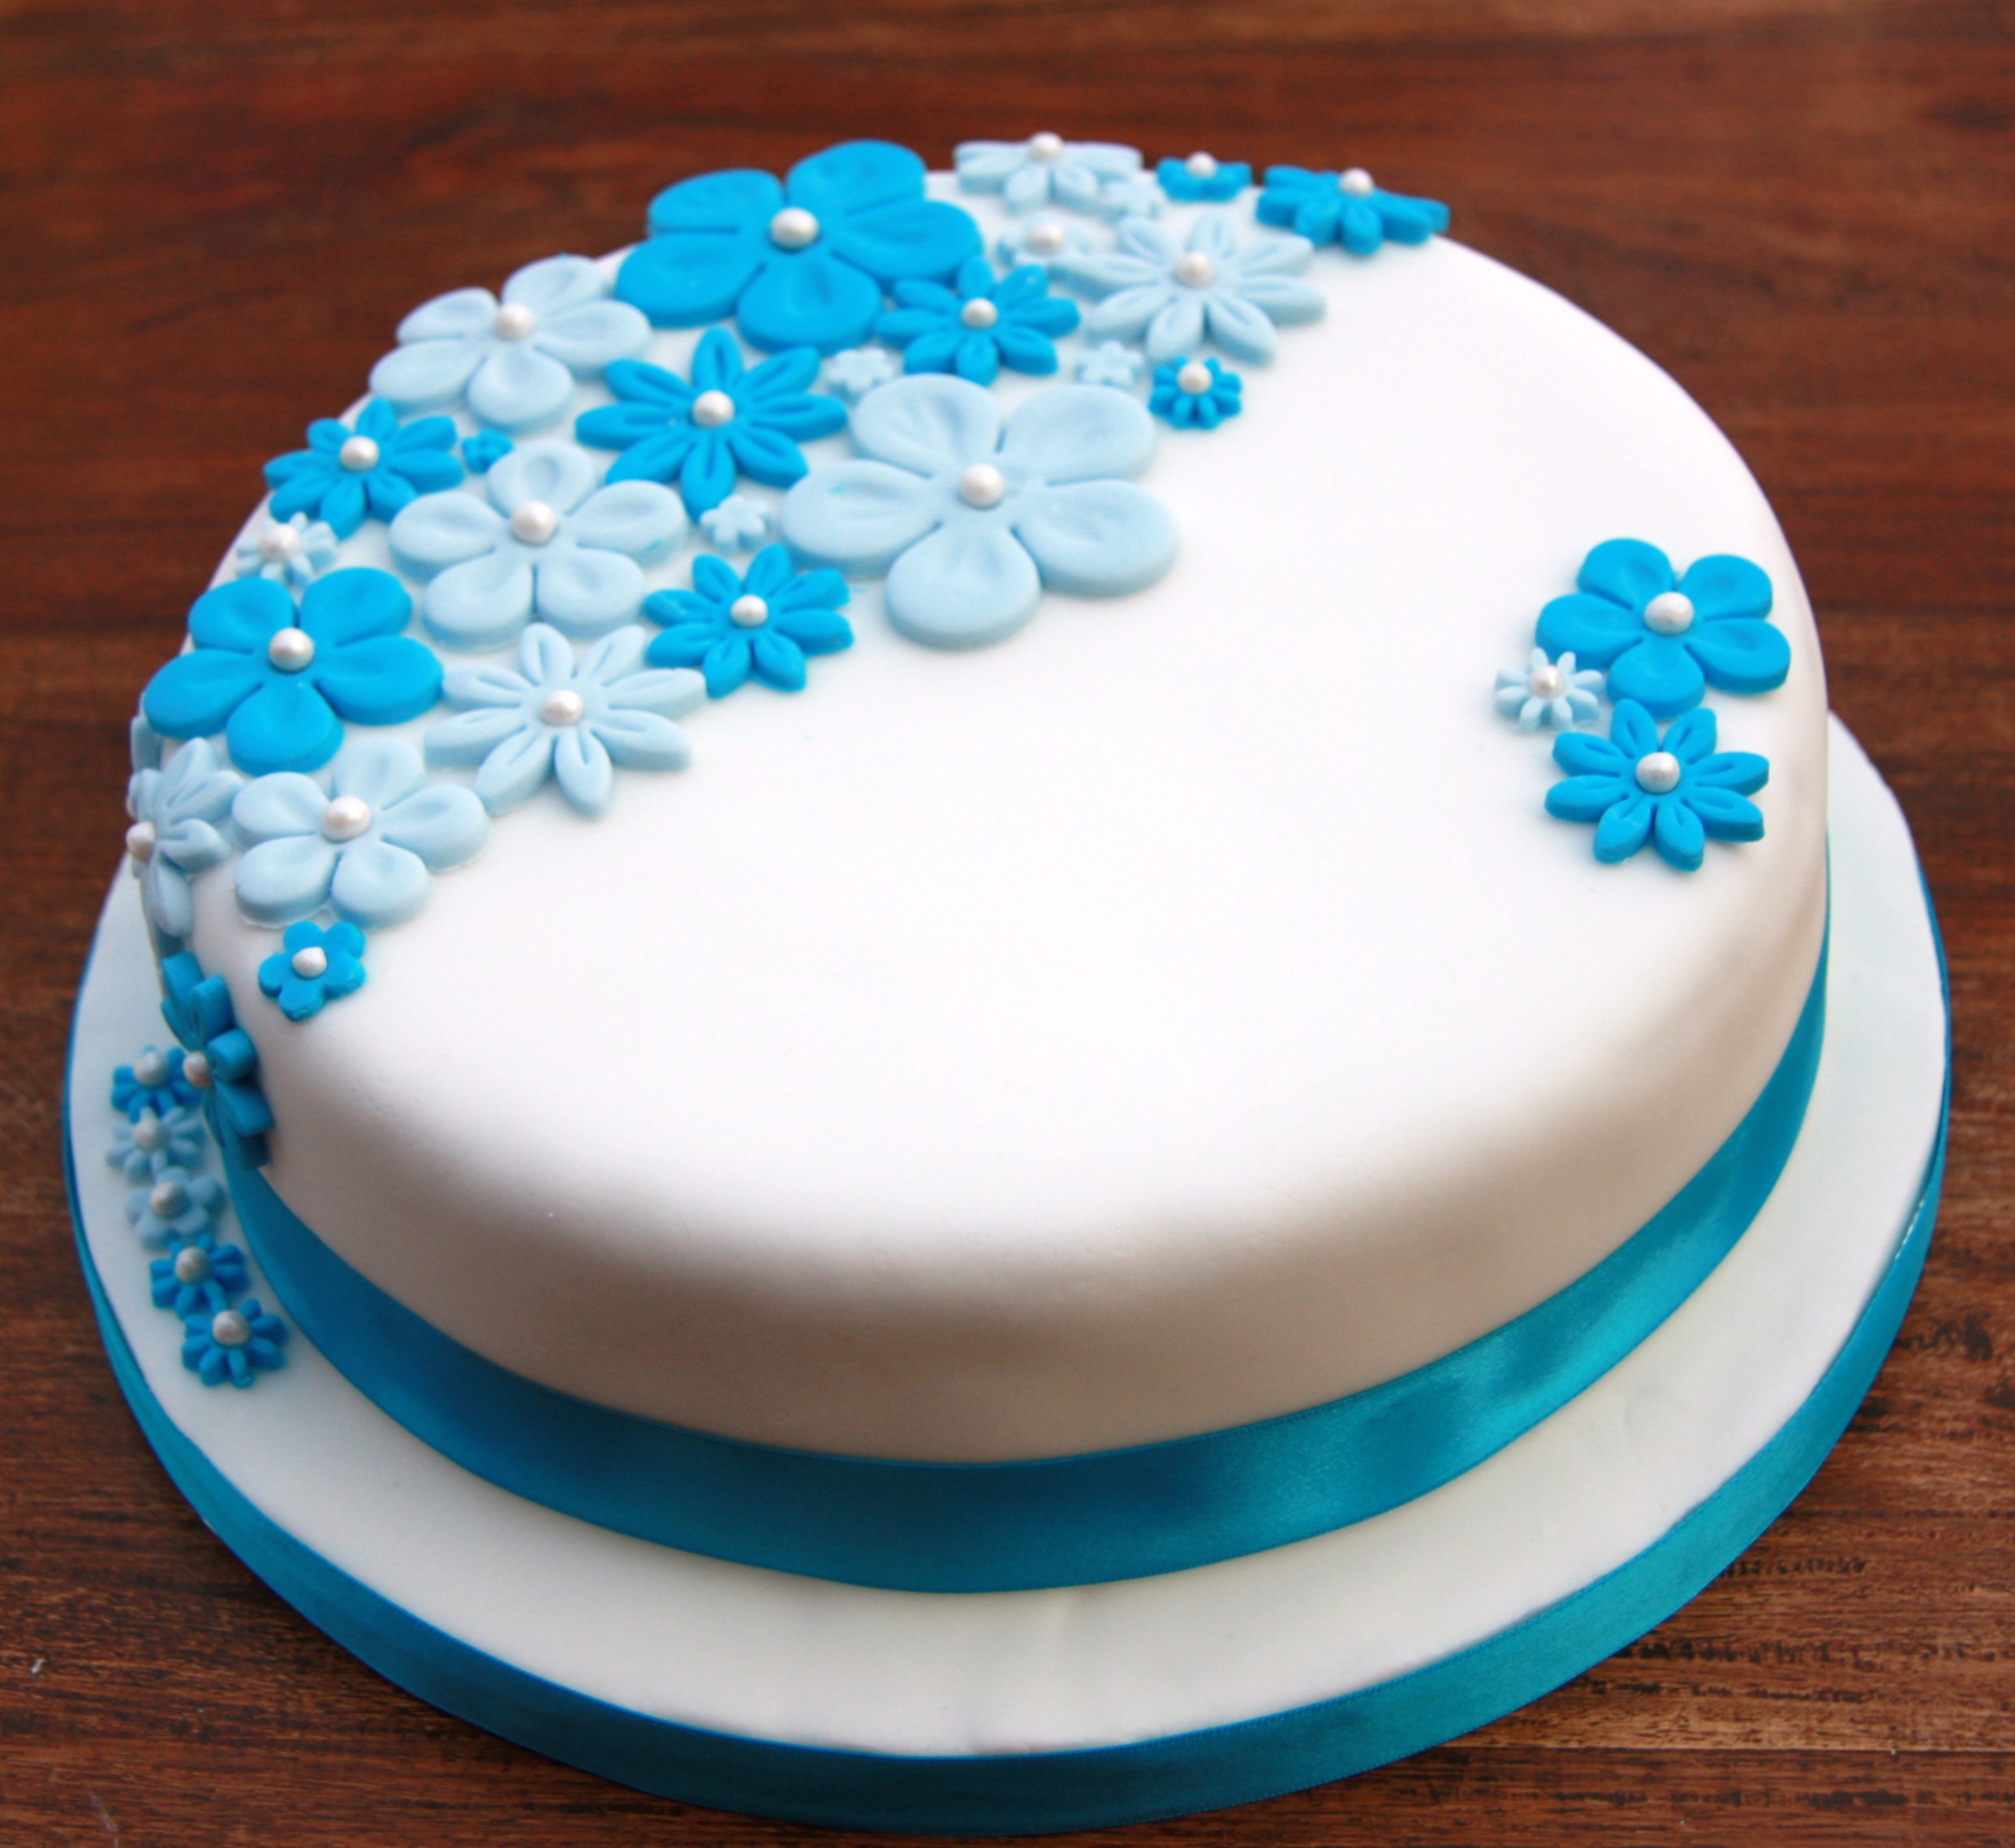 Birthday Cake With Blue Flowers  Lovinghomemade